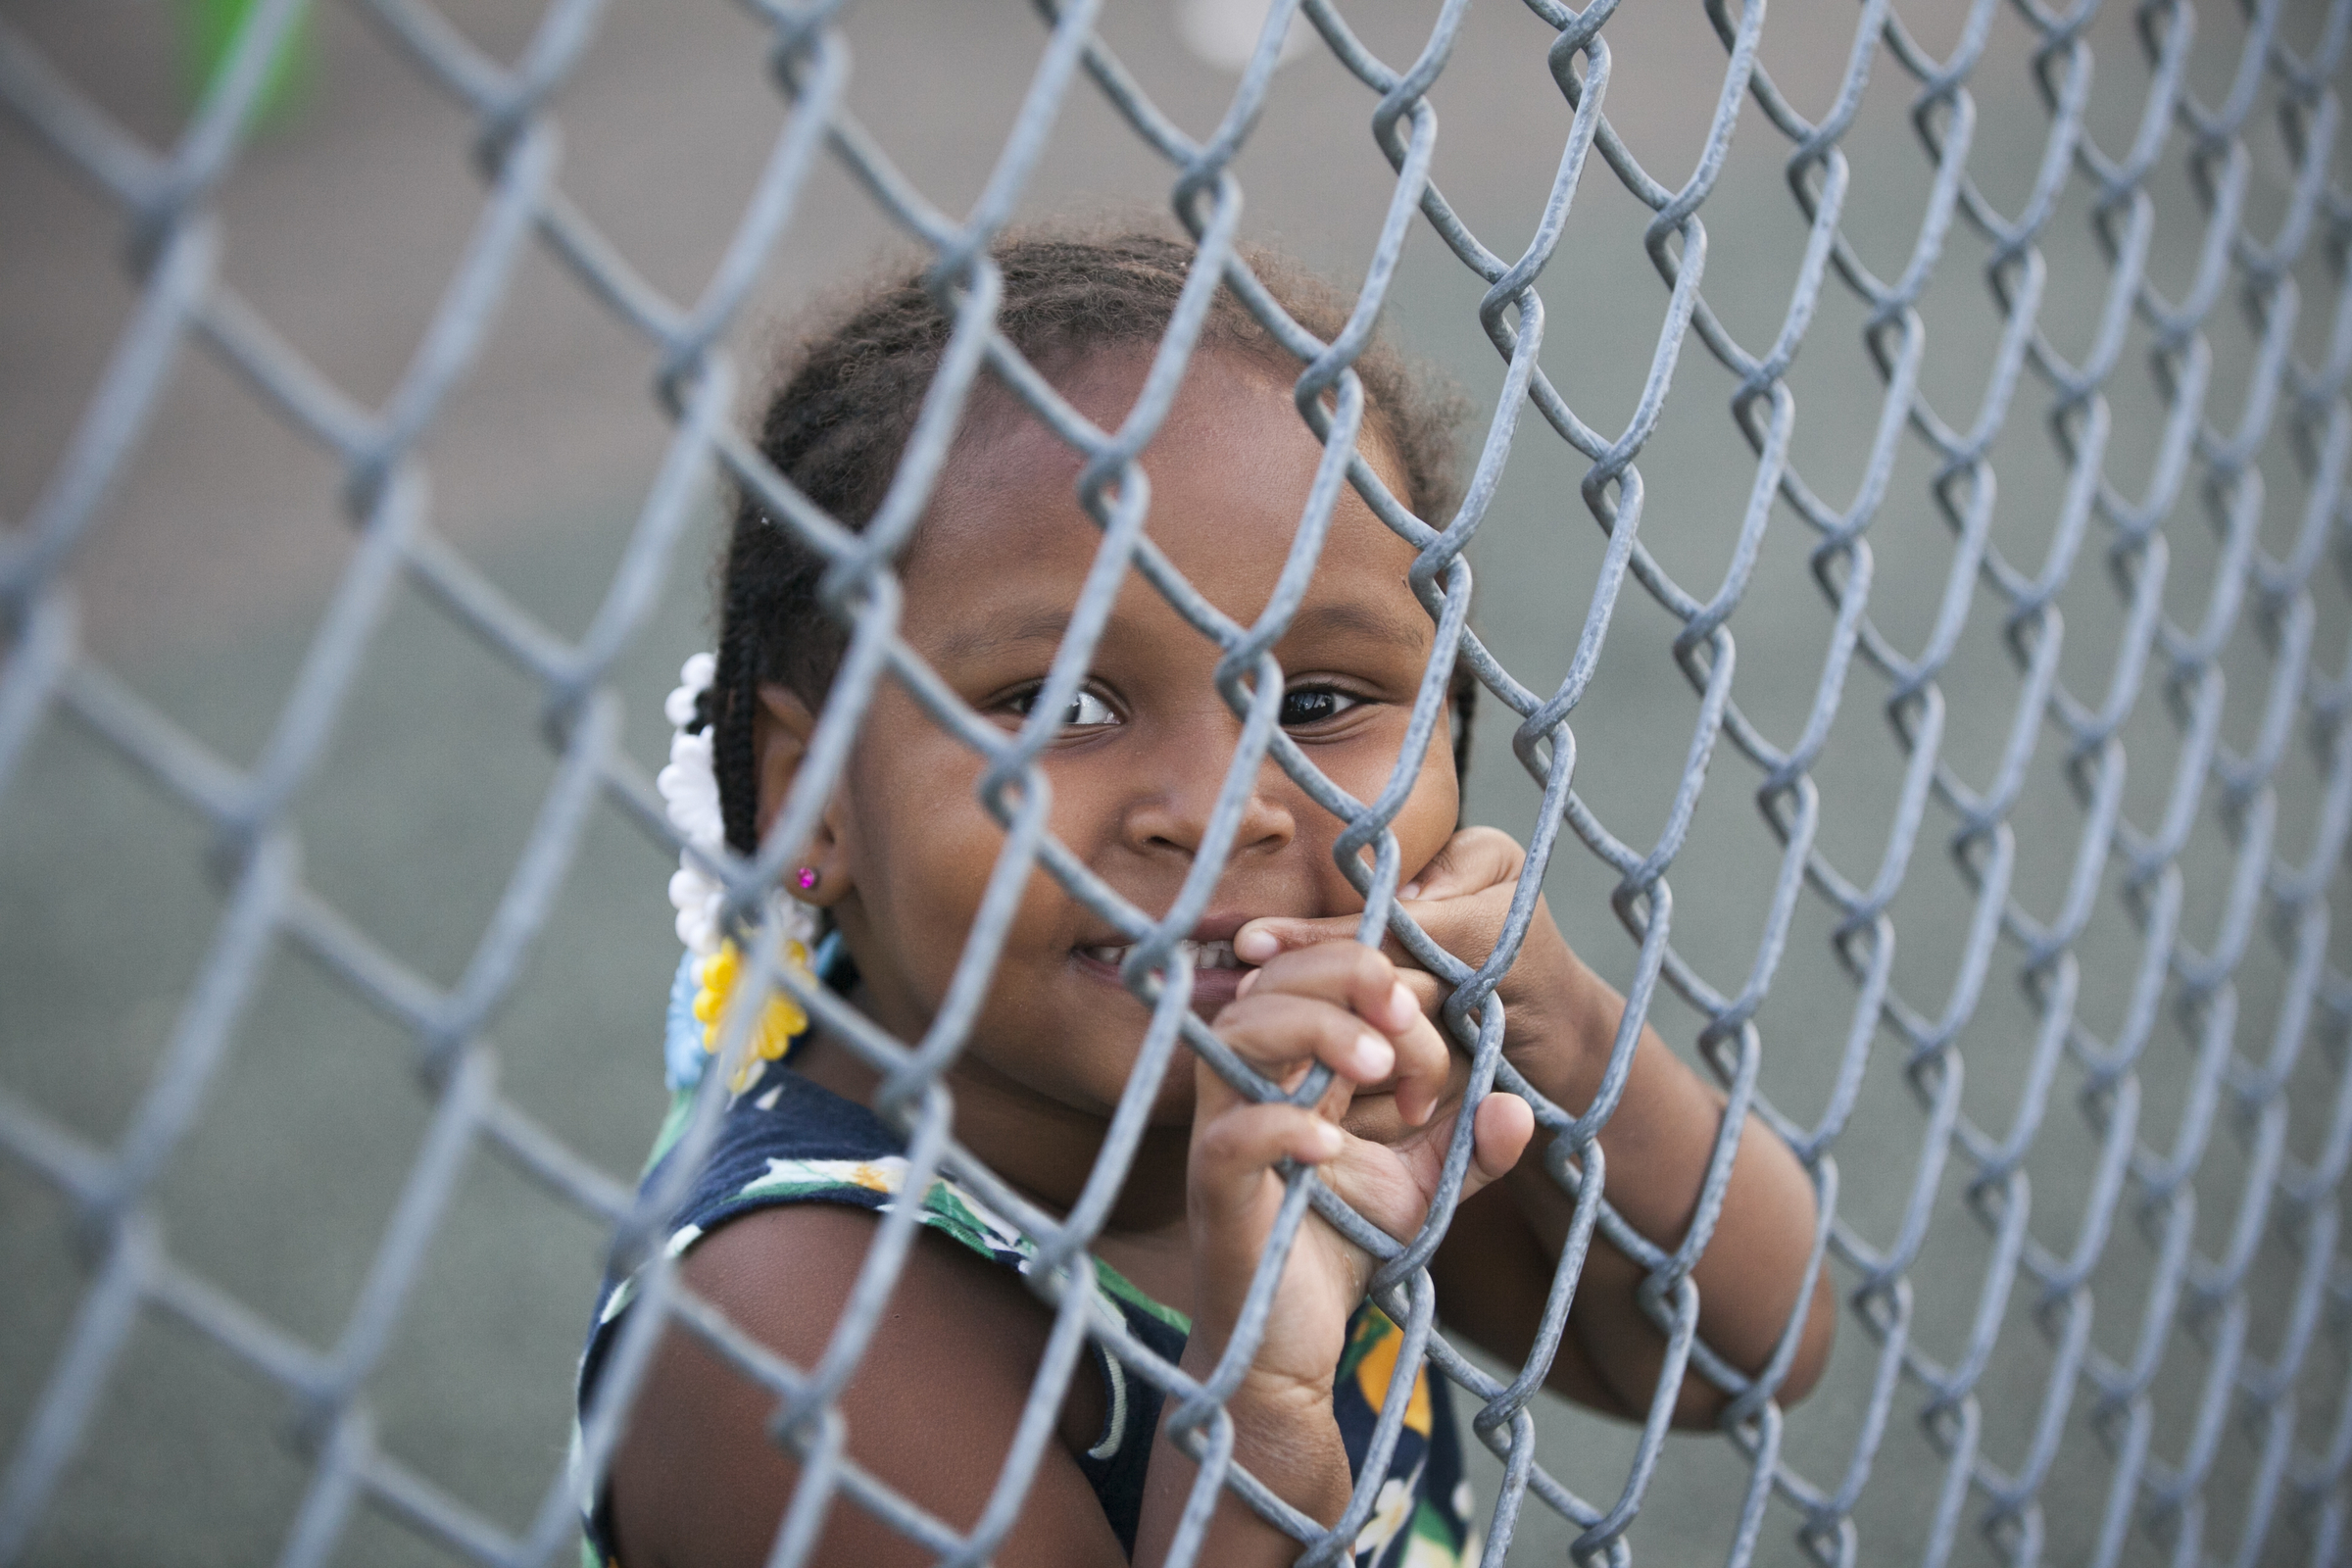 Mimi, 2, peers through the fence separating basketball courts from the play equipment at Dendy. | Maggie Loesch